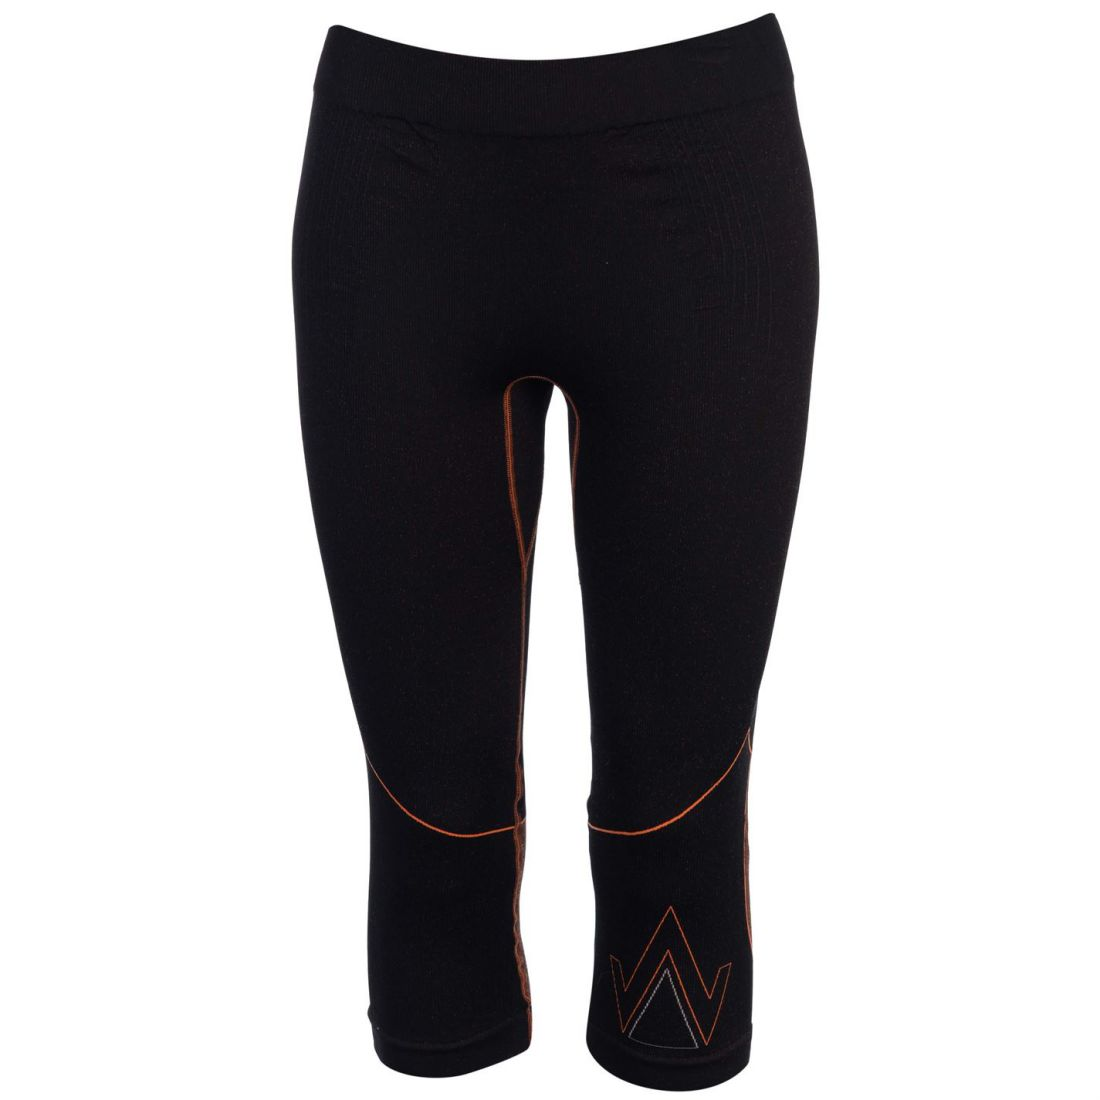 ff64f93fae18a Details about IFlow Pants three quarter Ladies 3/4 Walking Trousers Bottoms